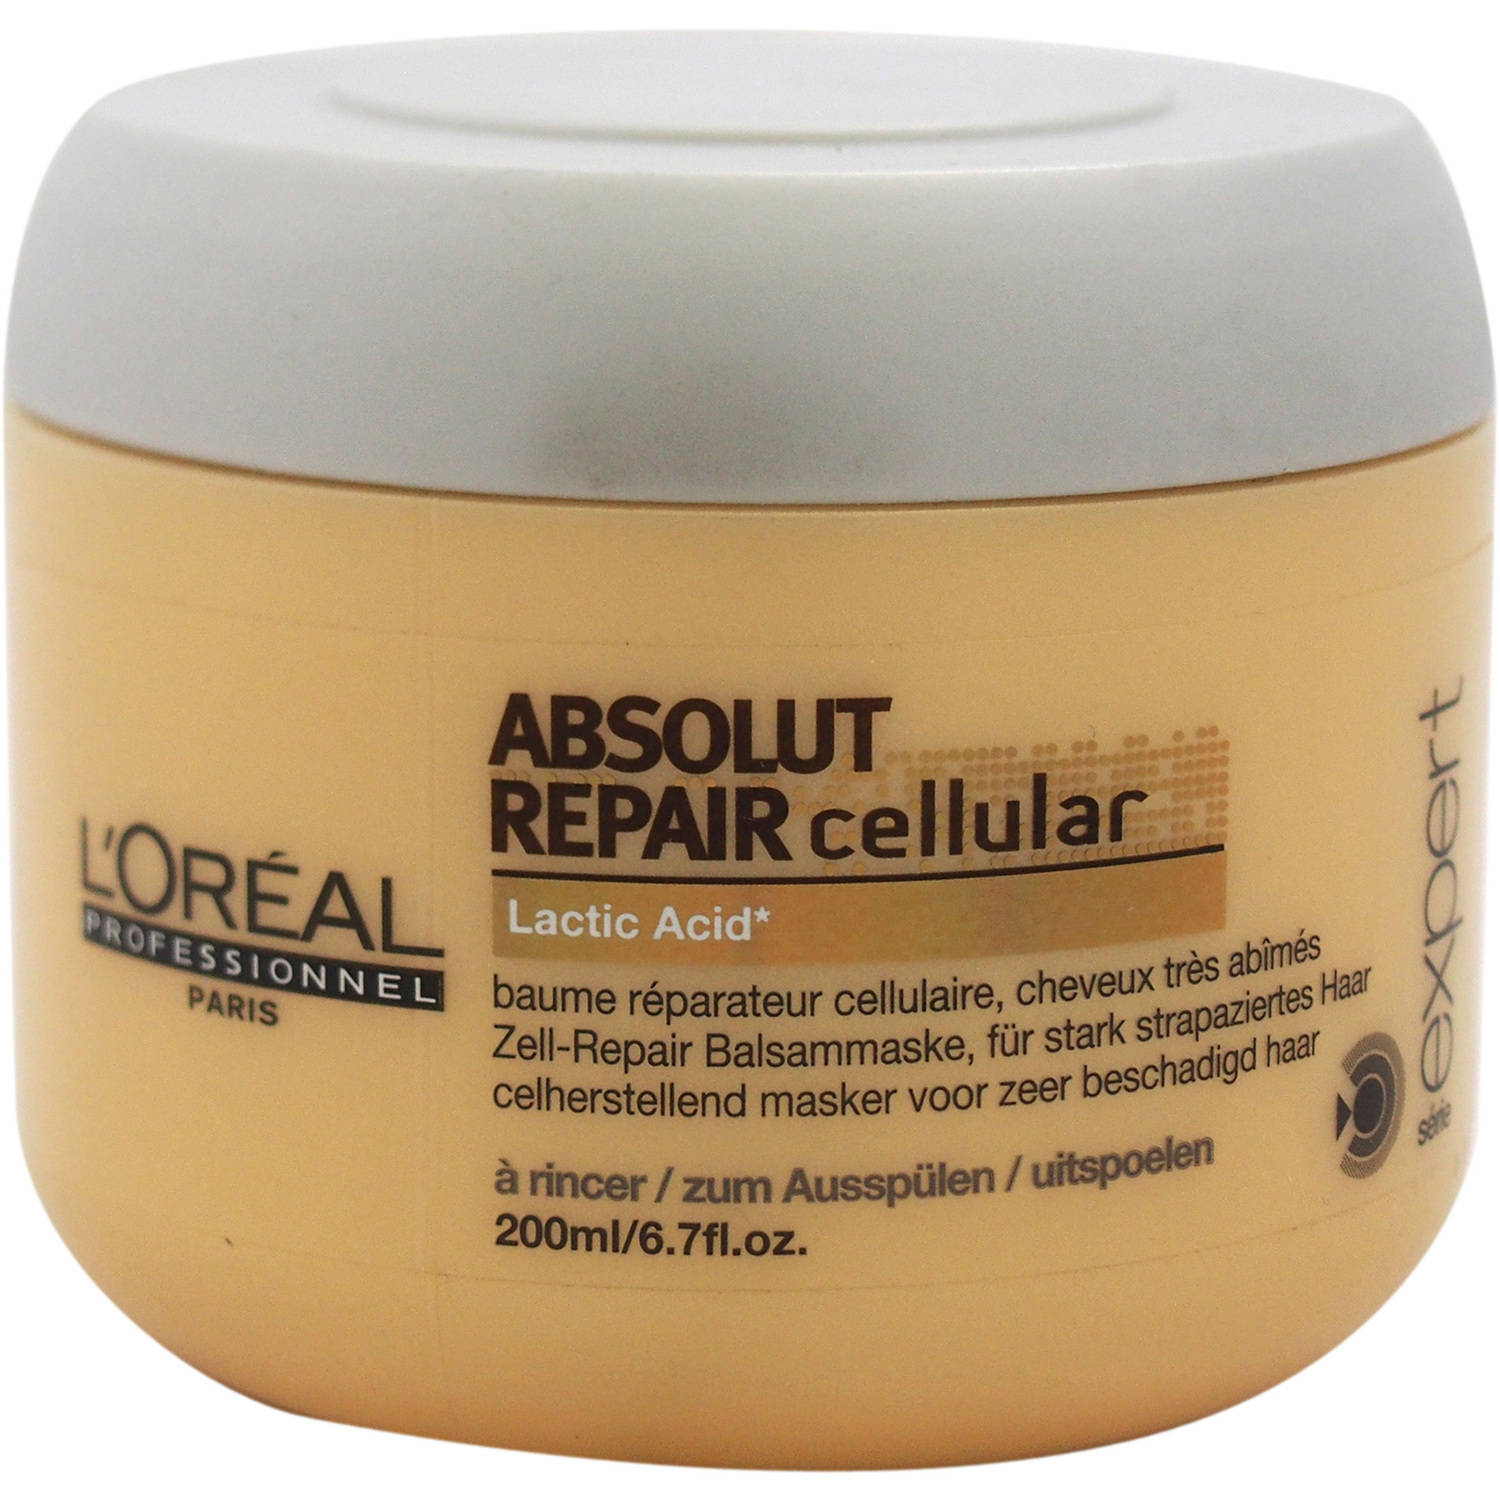 Serie Expert Absolut Repair Cellular Masque by L'Oreal Professional for Unisex, 6.7 oz - Walmart.com